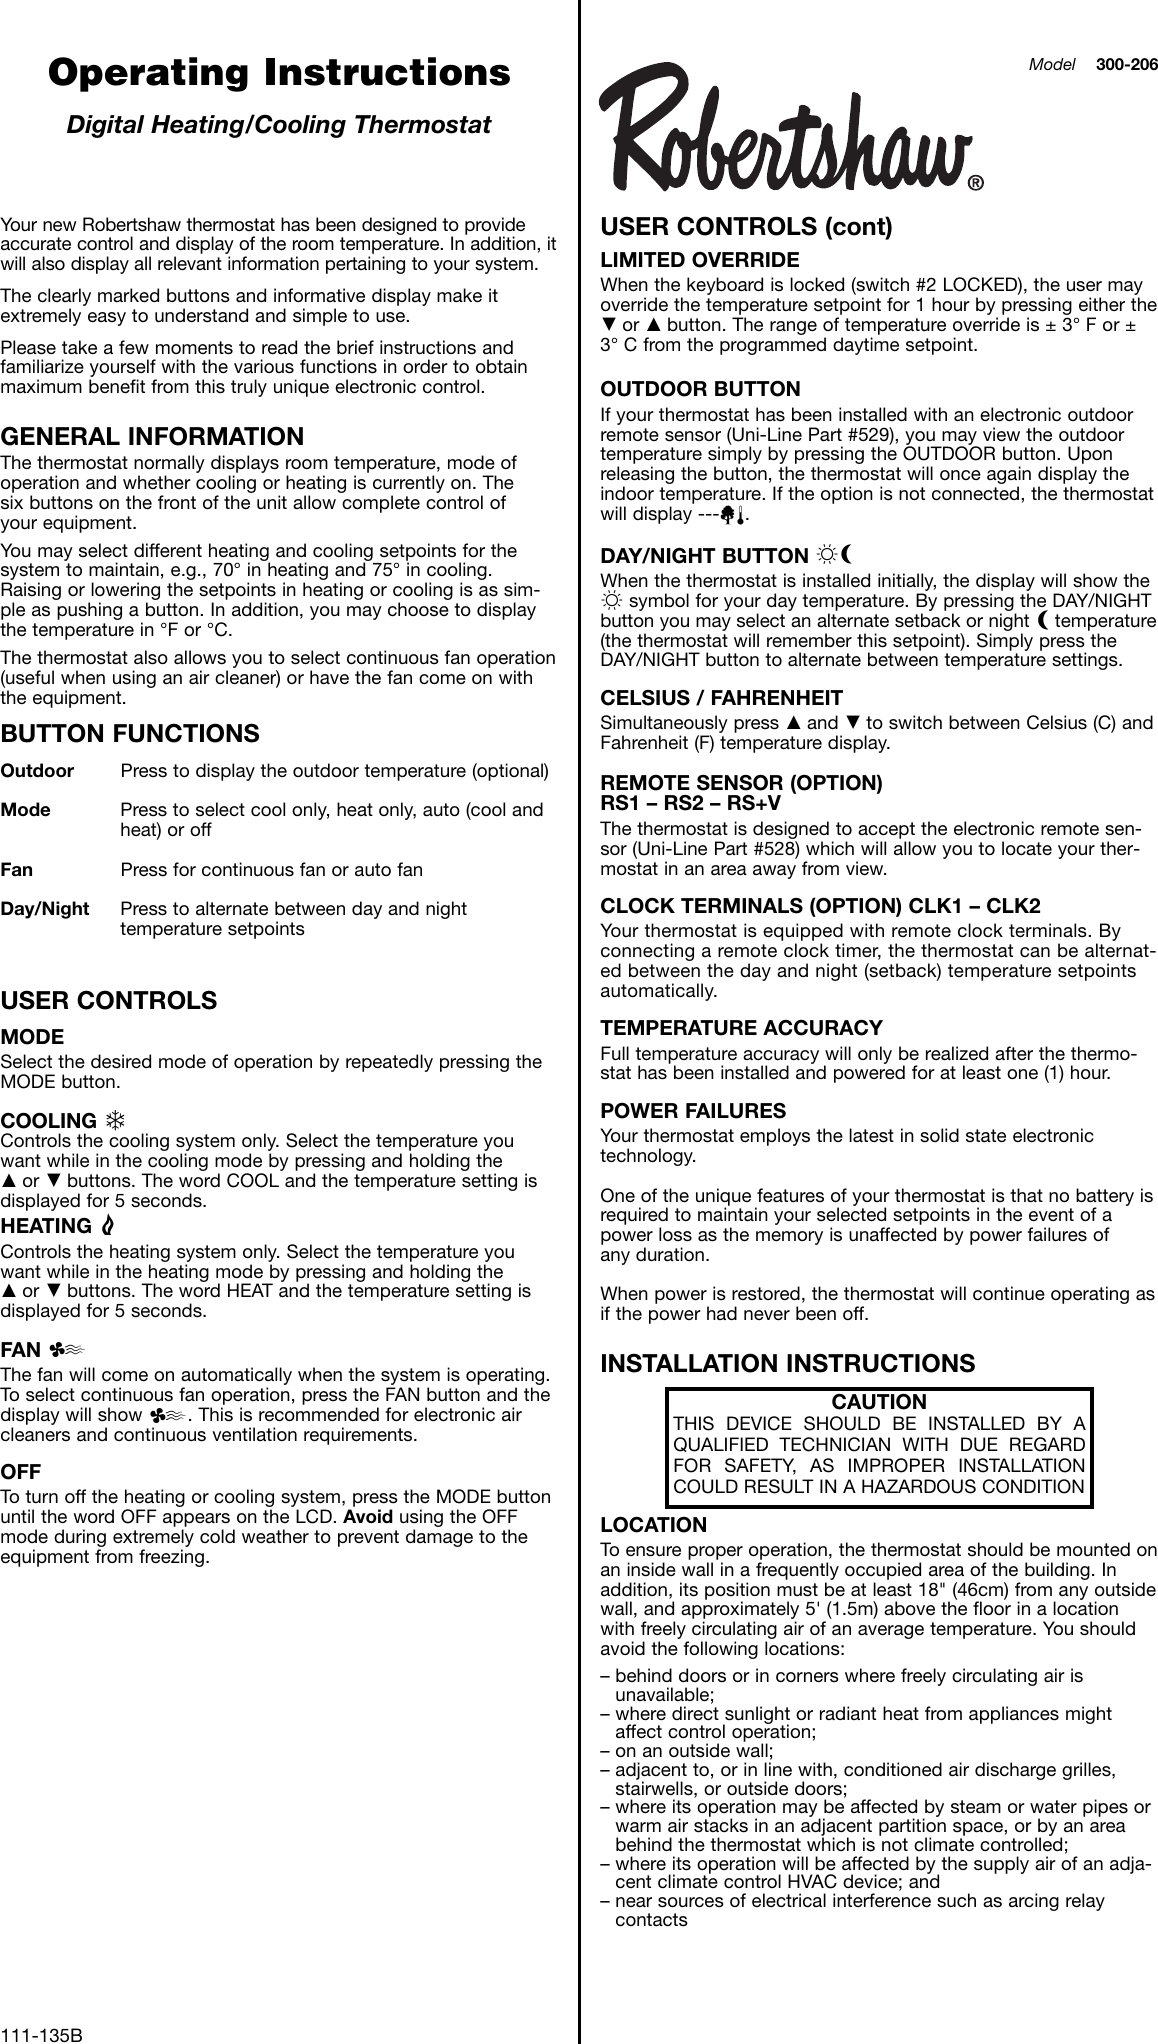 thermostat symbol, circuit diagram, thermostat installation, controls for gas valve diagram, refrigerator schematic diagram, thermostat cable, baseboard heat diagram, thermostat white-rodgers wiringheatpump, lux thermostat diagram, thermostat troubleshooting, thermostat switch, wall heater thermostat diagram, thermostat schematic diagram, honeywell thermostat diagram, thermostat clip art, thermostat housing, thermostat wire, air conditioning diagram, thermostat cover, thermostat manual, on day night thermostat wiring diagram